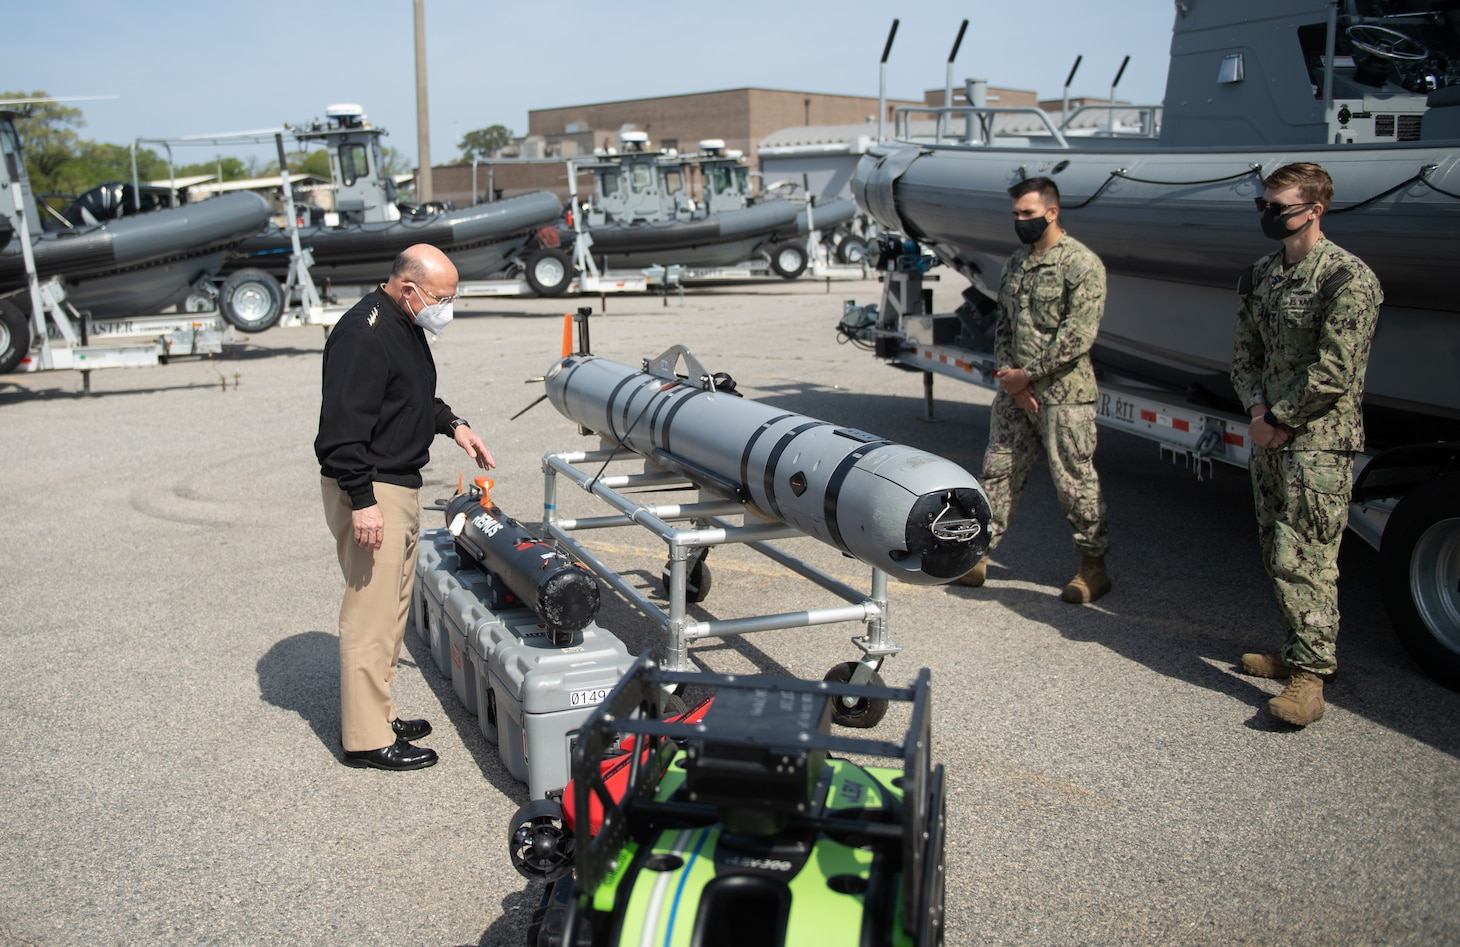 VIRGINIA BEACH, Va. (April 14, 2020) – Chief of Naval Operations Mike Gilday views a MK 18 MOD 2 unmanned undersea vehicle during a tour of Explosive Ordnance Disposal Group (EODGRU) Two STRIKE facility onboard Joint Expeditionary Base Little Creek, April 14, 2021. Gilday and Master Chief Petty Officer of the Navy Russel Smith toured the EODGRU 2 STRIKE facility and met with EOD operators and Navy divers to discuss capabilities and equipment employed by the force. EOD STRIKE protects individuals and teams in the EOD Force from debilitating stress through adaptability, recovery and growth across the personal, social, cognitive and physical wellness domains. (U.S. Navy photo by Mass Communication Specialist Seaman Apprentice Nicholas Skyles)